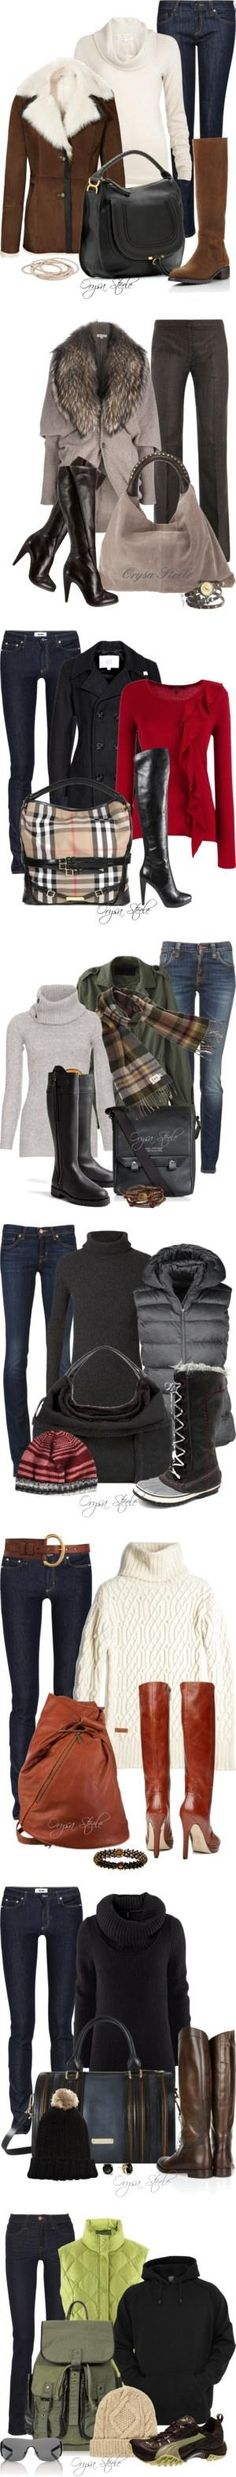 """""""Winter Style"""" by orysa on Polyvore by Lorelei_m"""